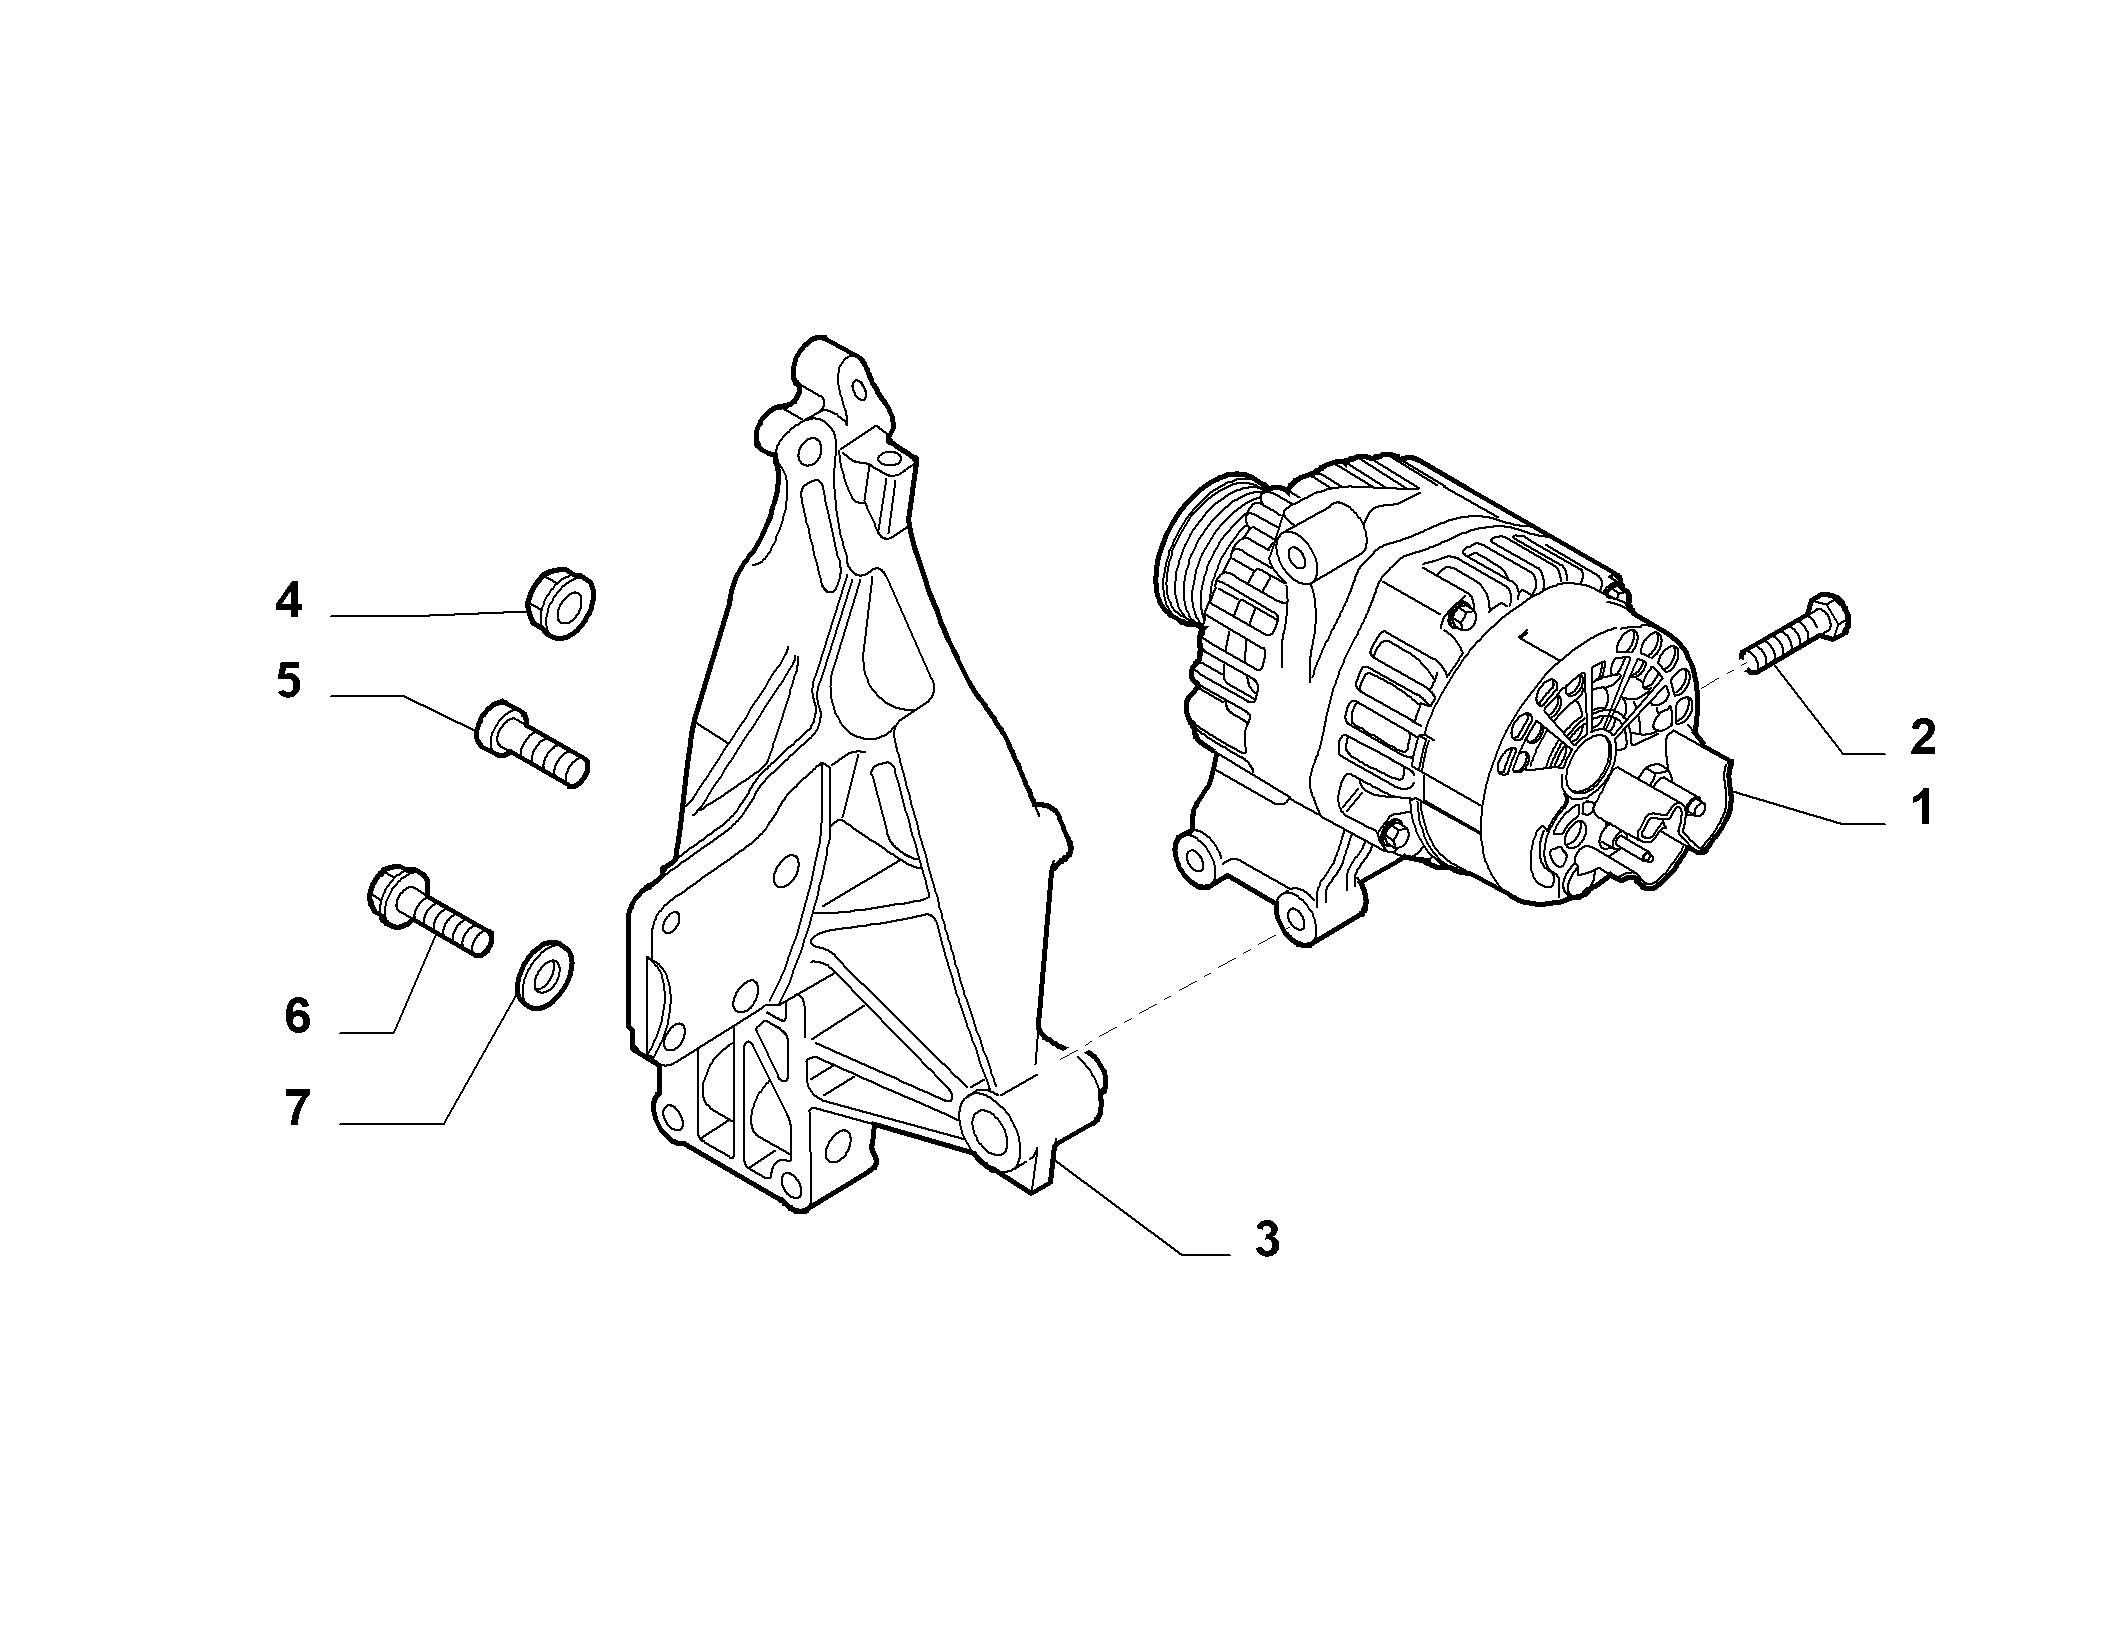 55301-010 ALTERNATOR AND MOUNTING